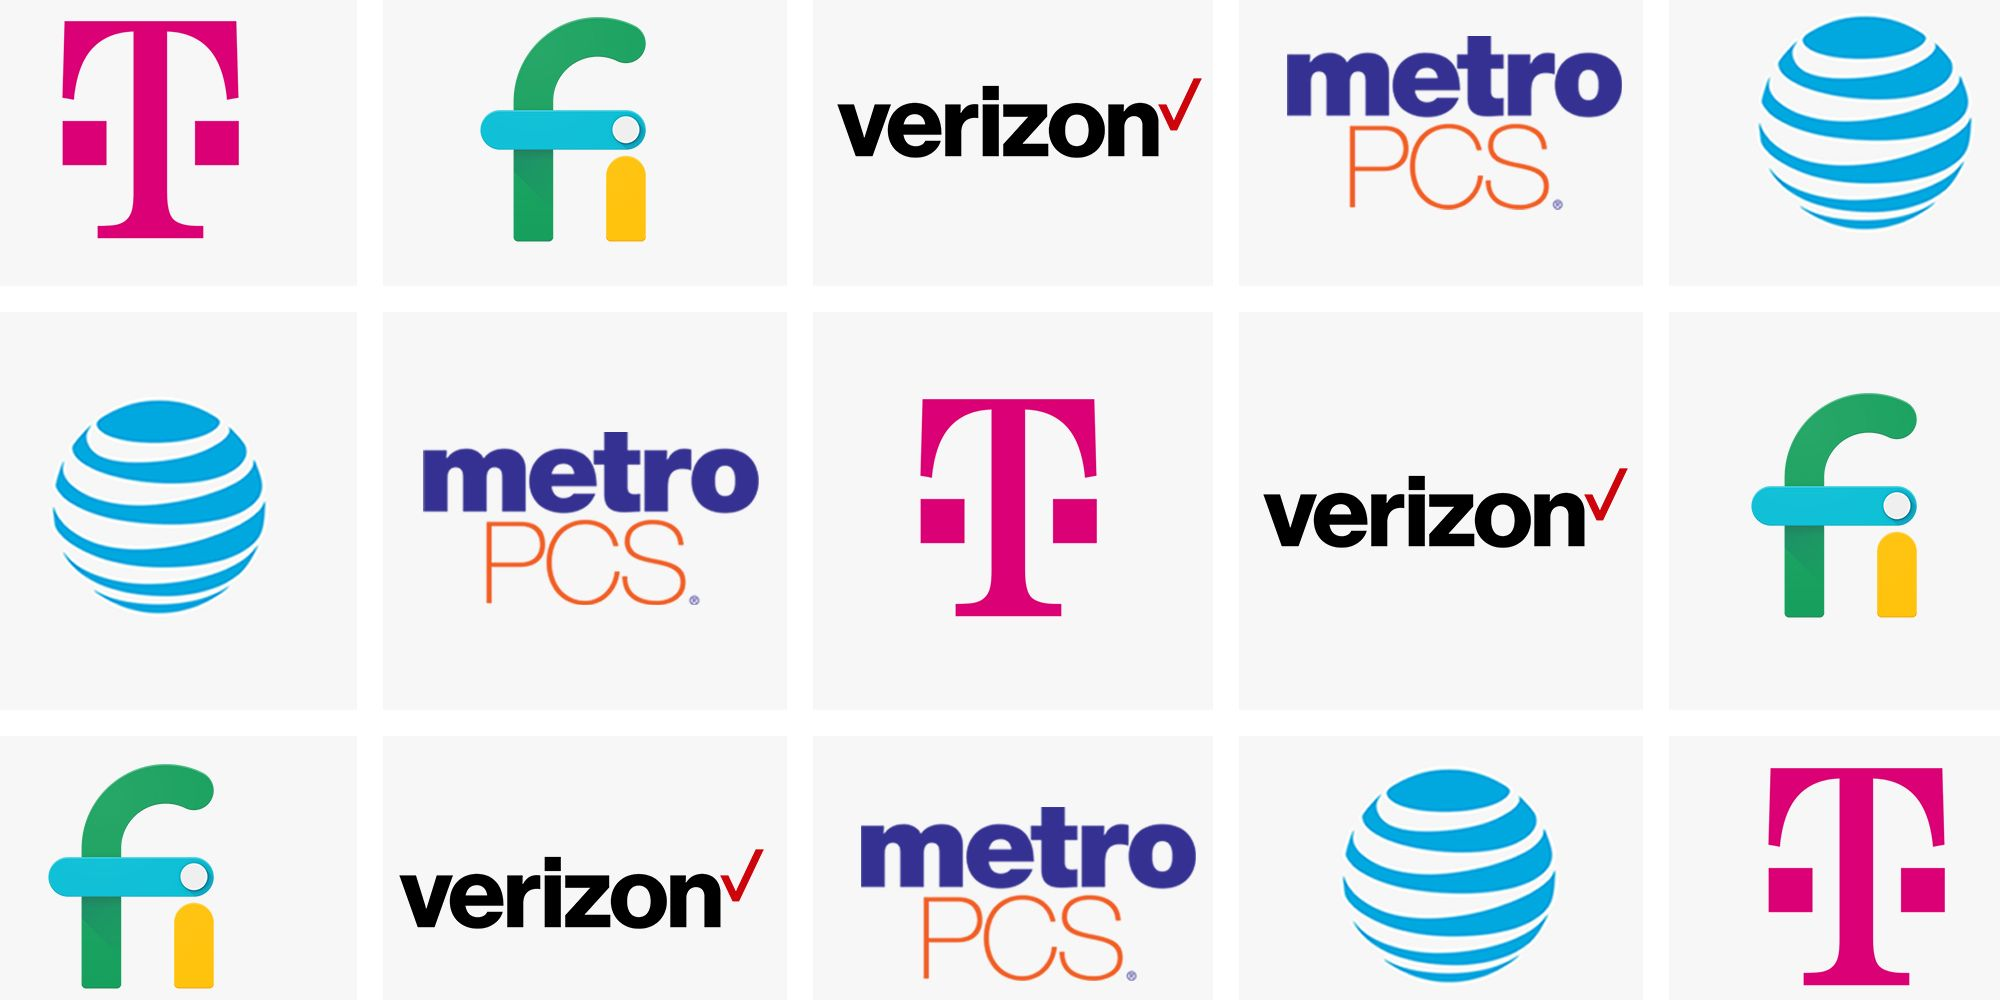 5 Best Cell Phone Plans to Get in 2018 - Best Verizon, T Mobile